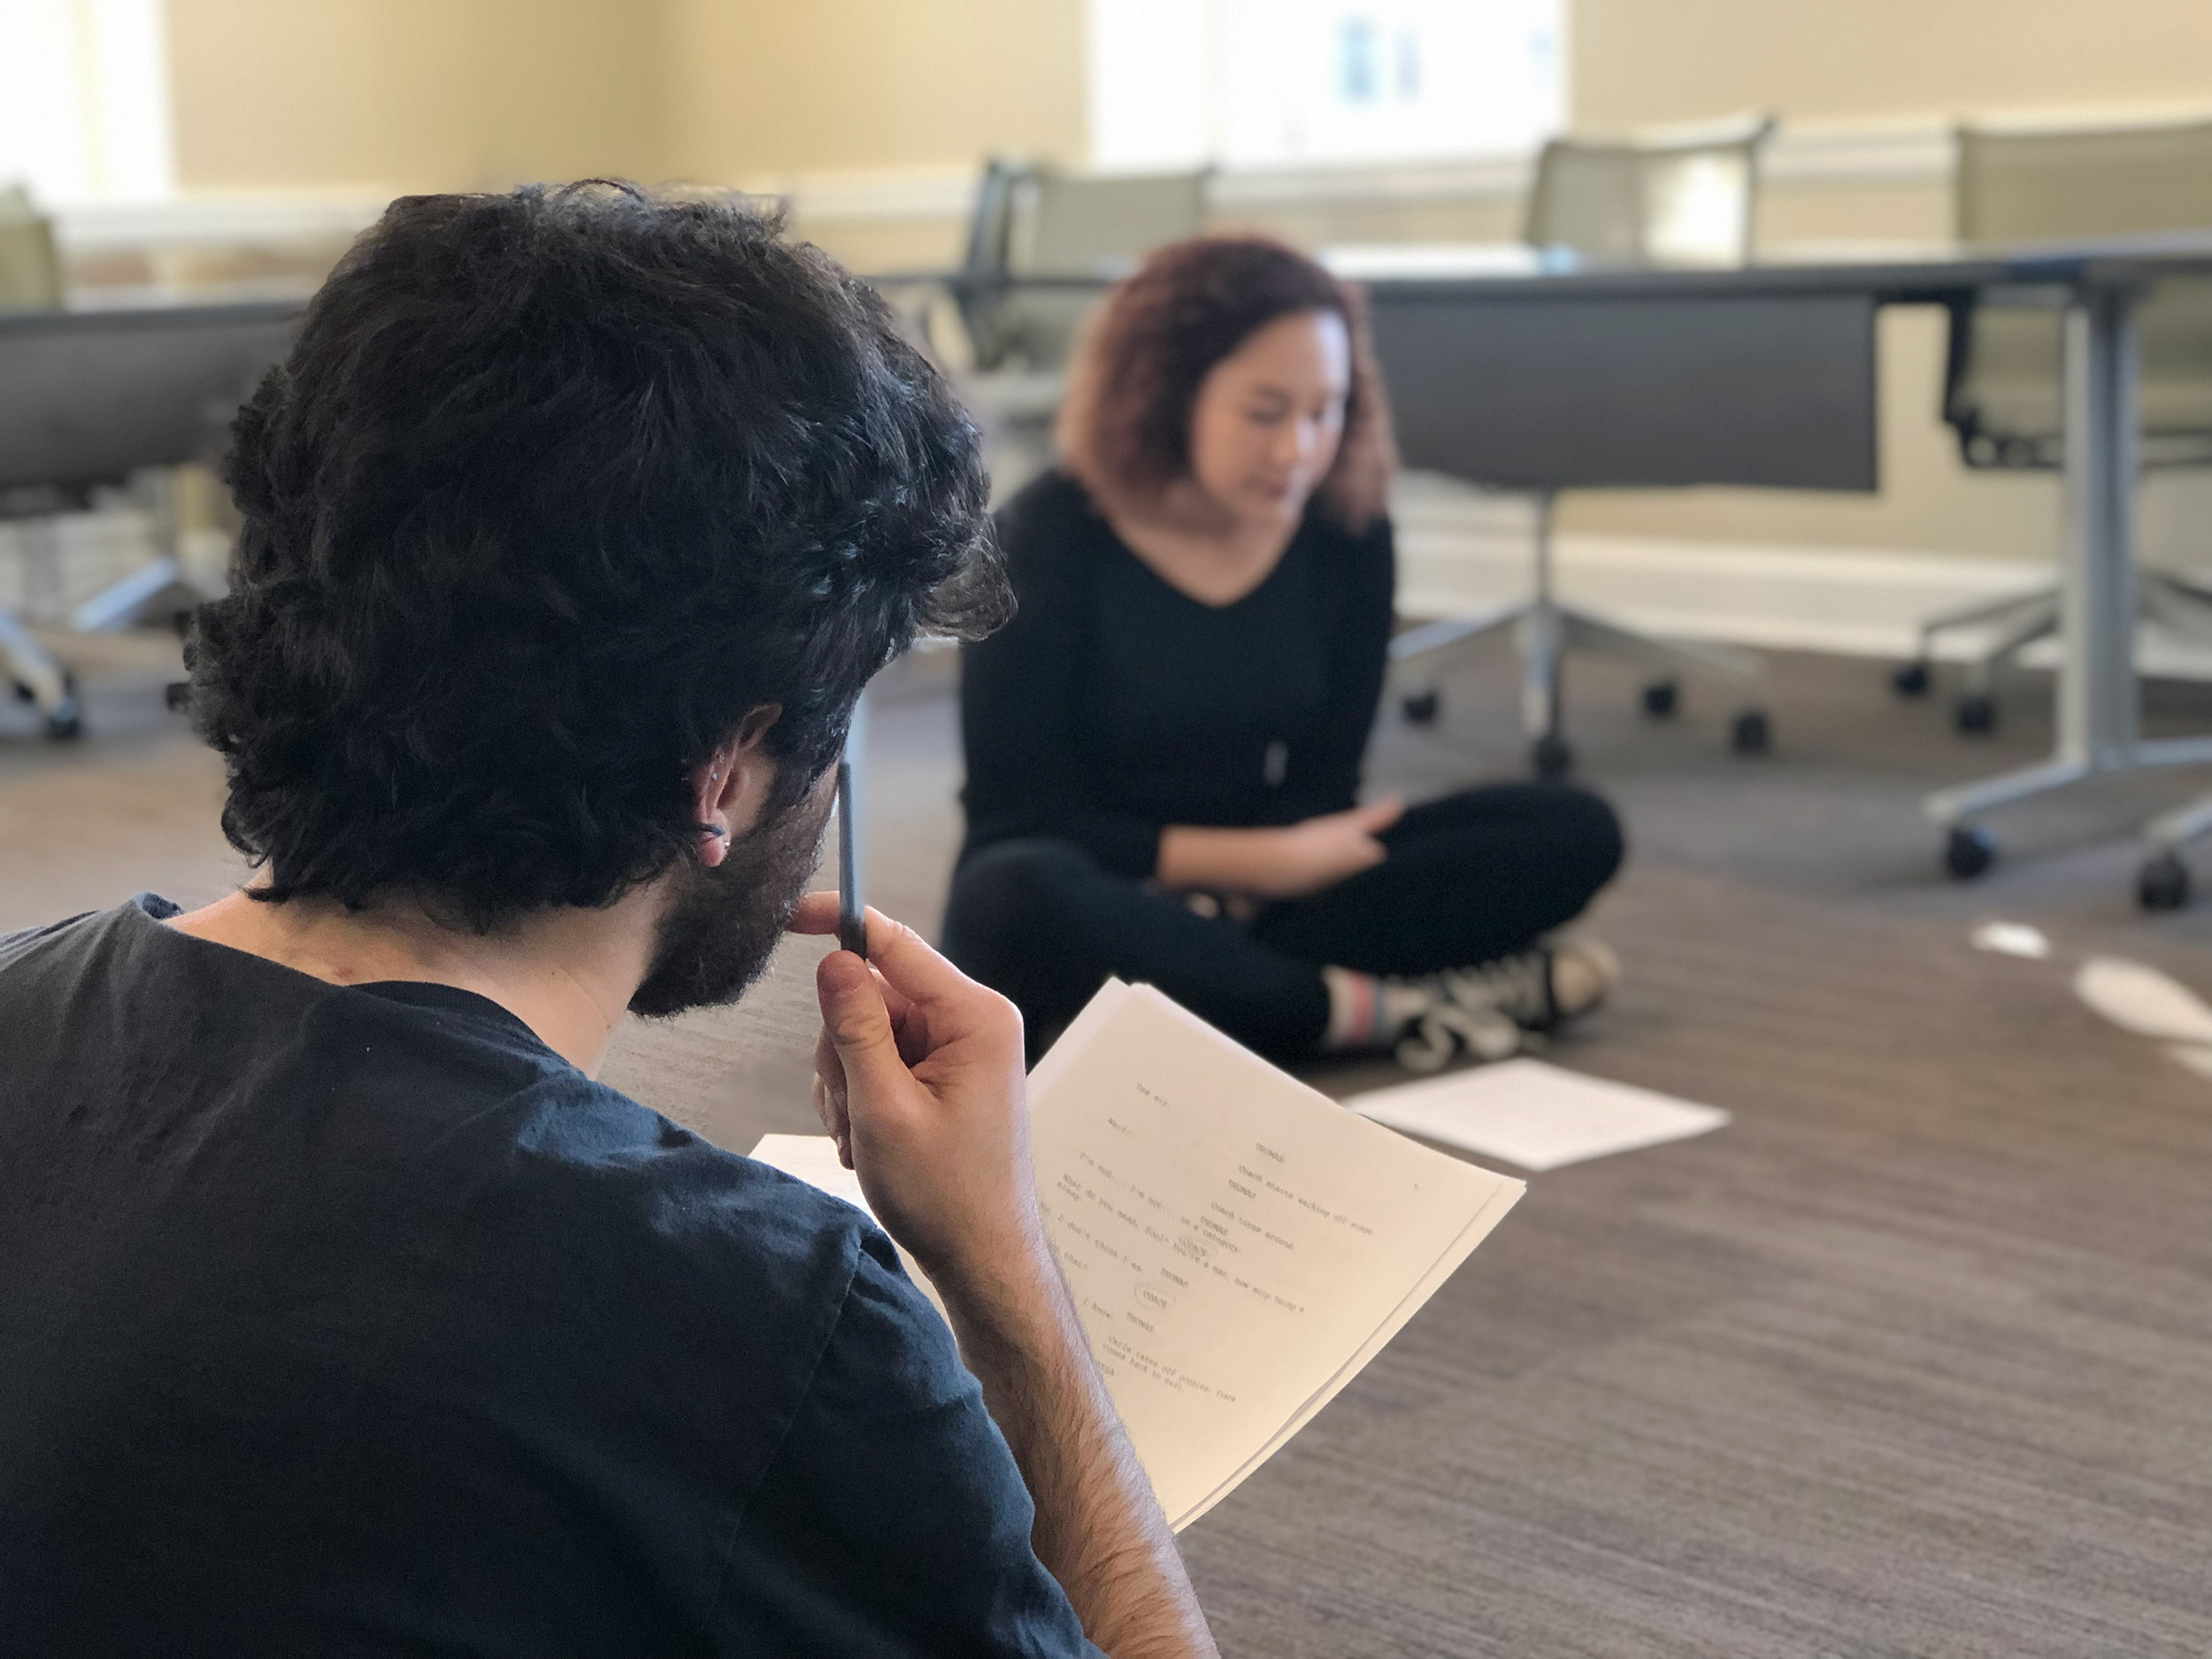 Student actors Nat Berelovich and Grace George rehearse their play, directed by JaRhonda Roberts. (Photo by Payton Moledor, University Communications)